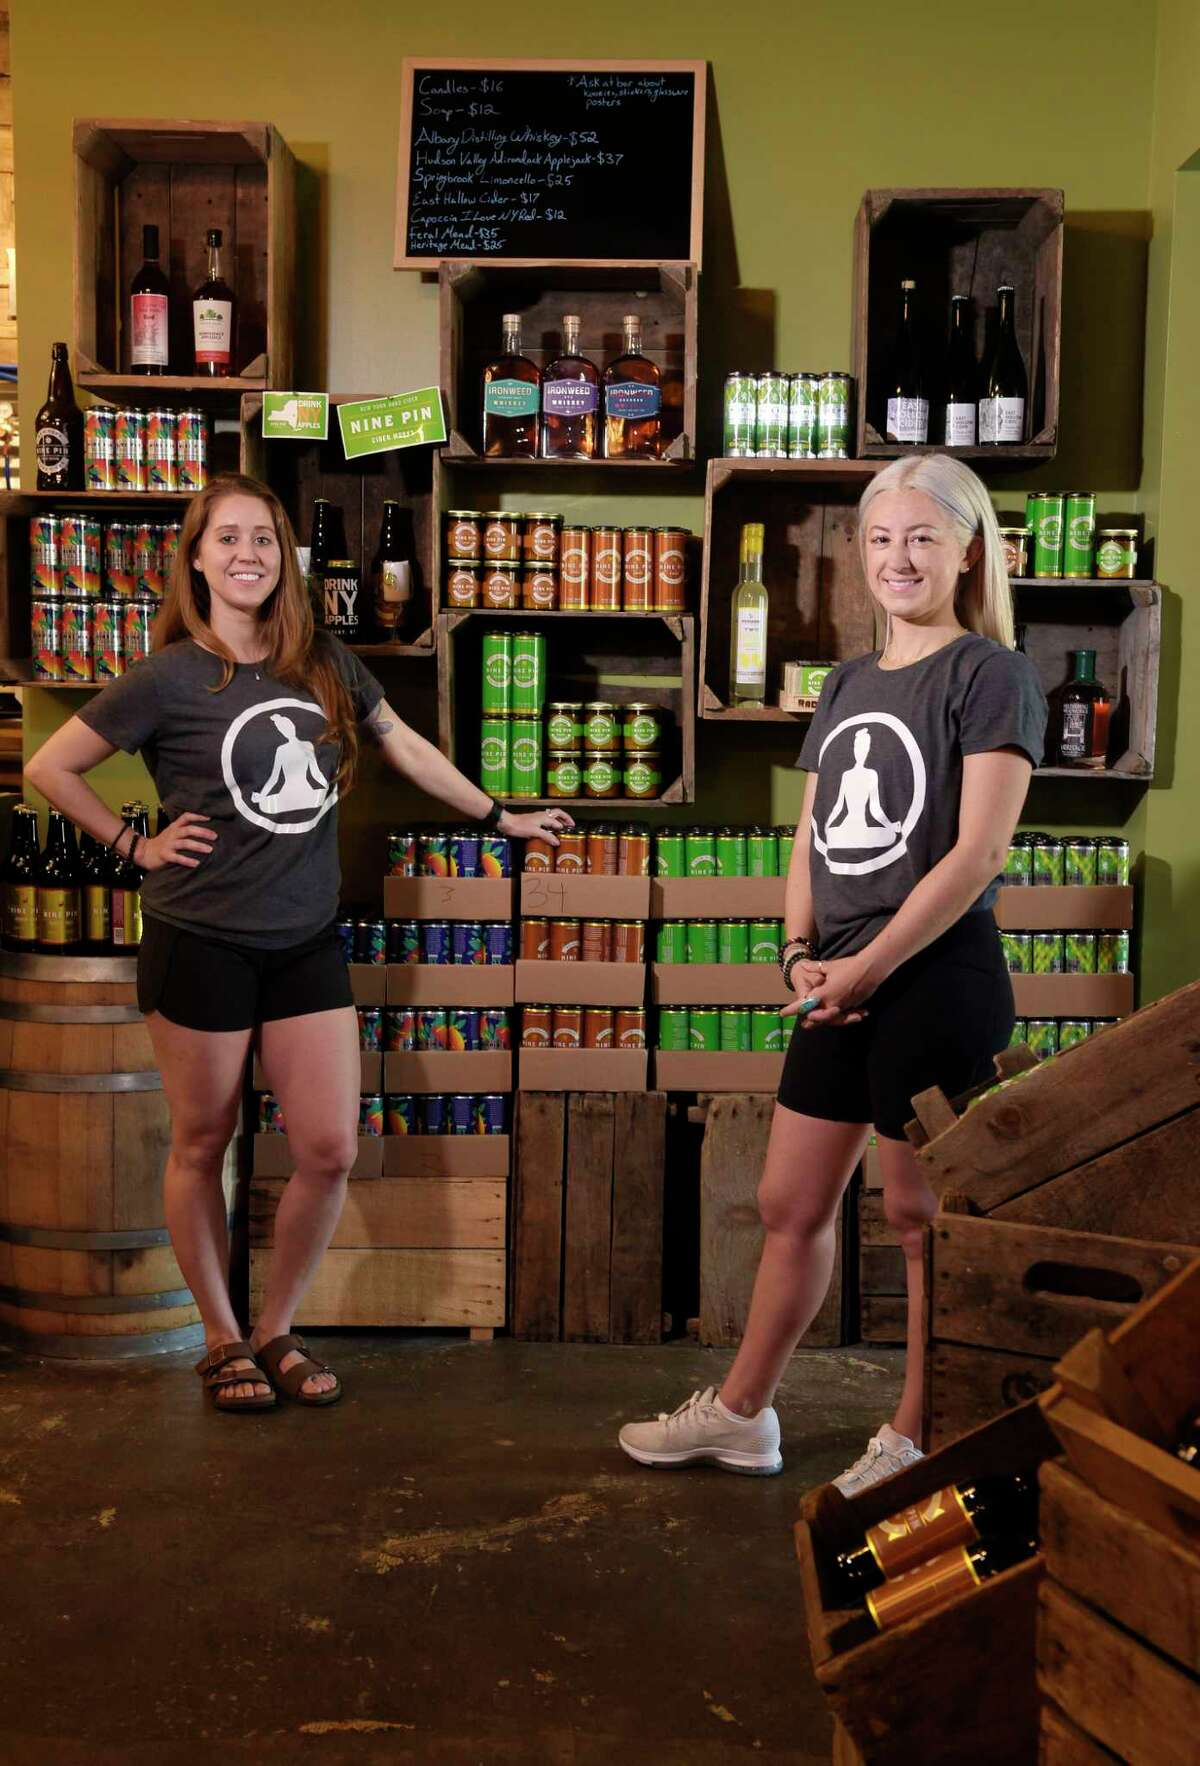 Warehouse Wellness founders, Jenna Rankert, left, and Kristine Williams, pose for a photo inside Nine Pin Cider on Sunday, June 11, 2017, in Albany, N.Y. (Paul Buckowski / Times Union)